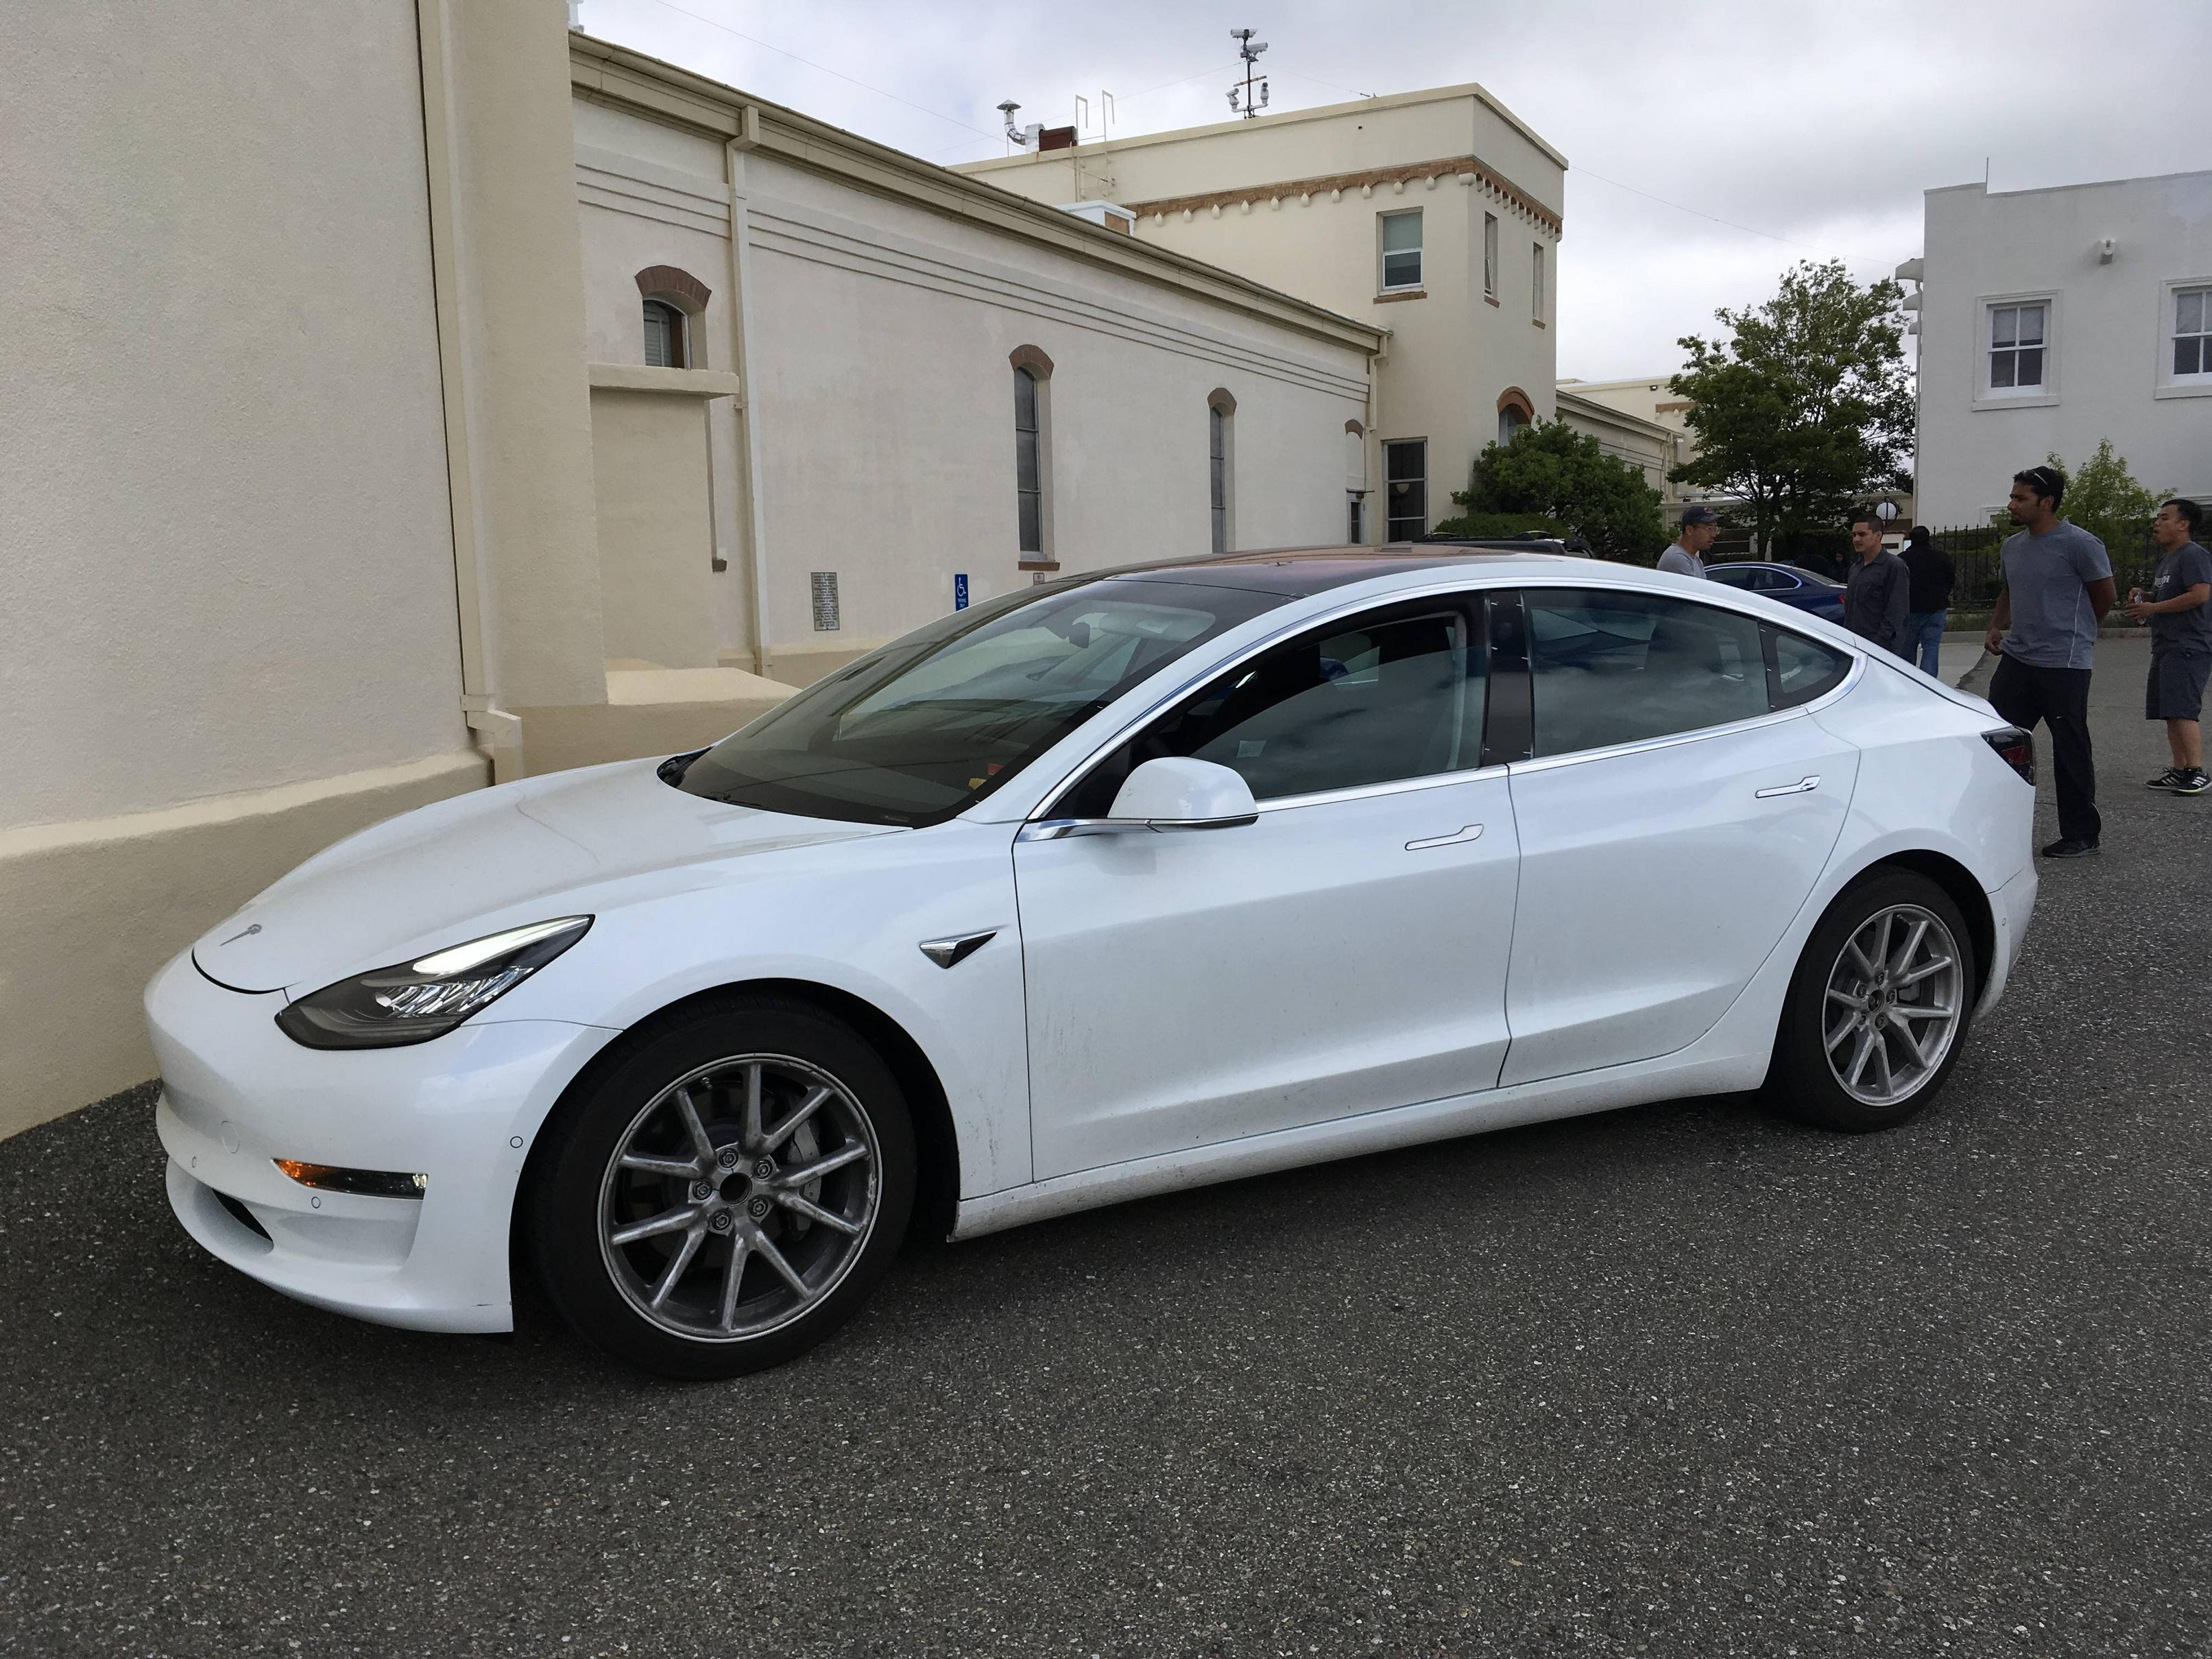 new pictures of model 3 interior gallery the last